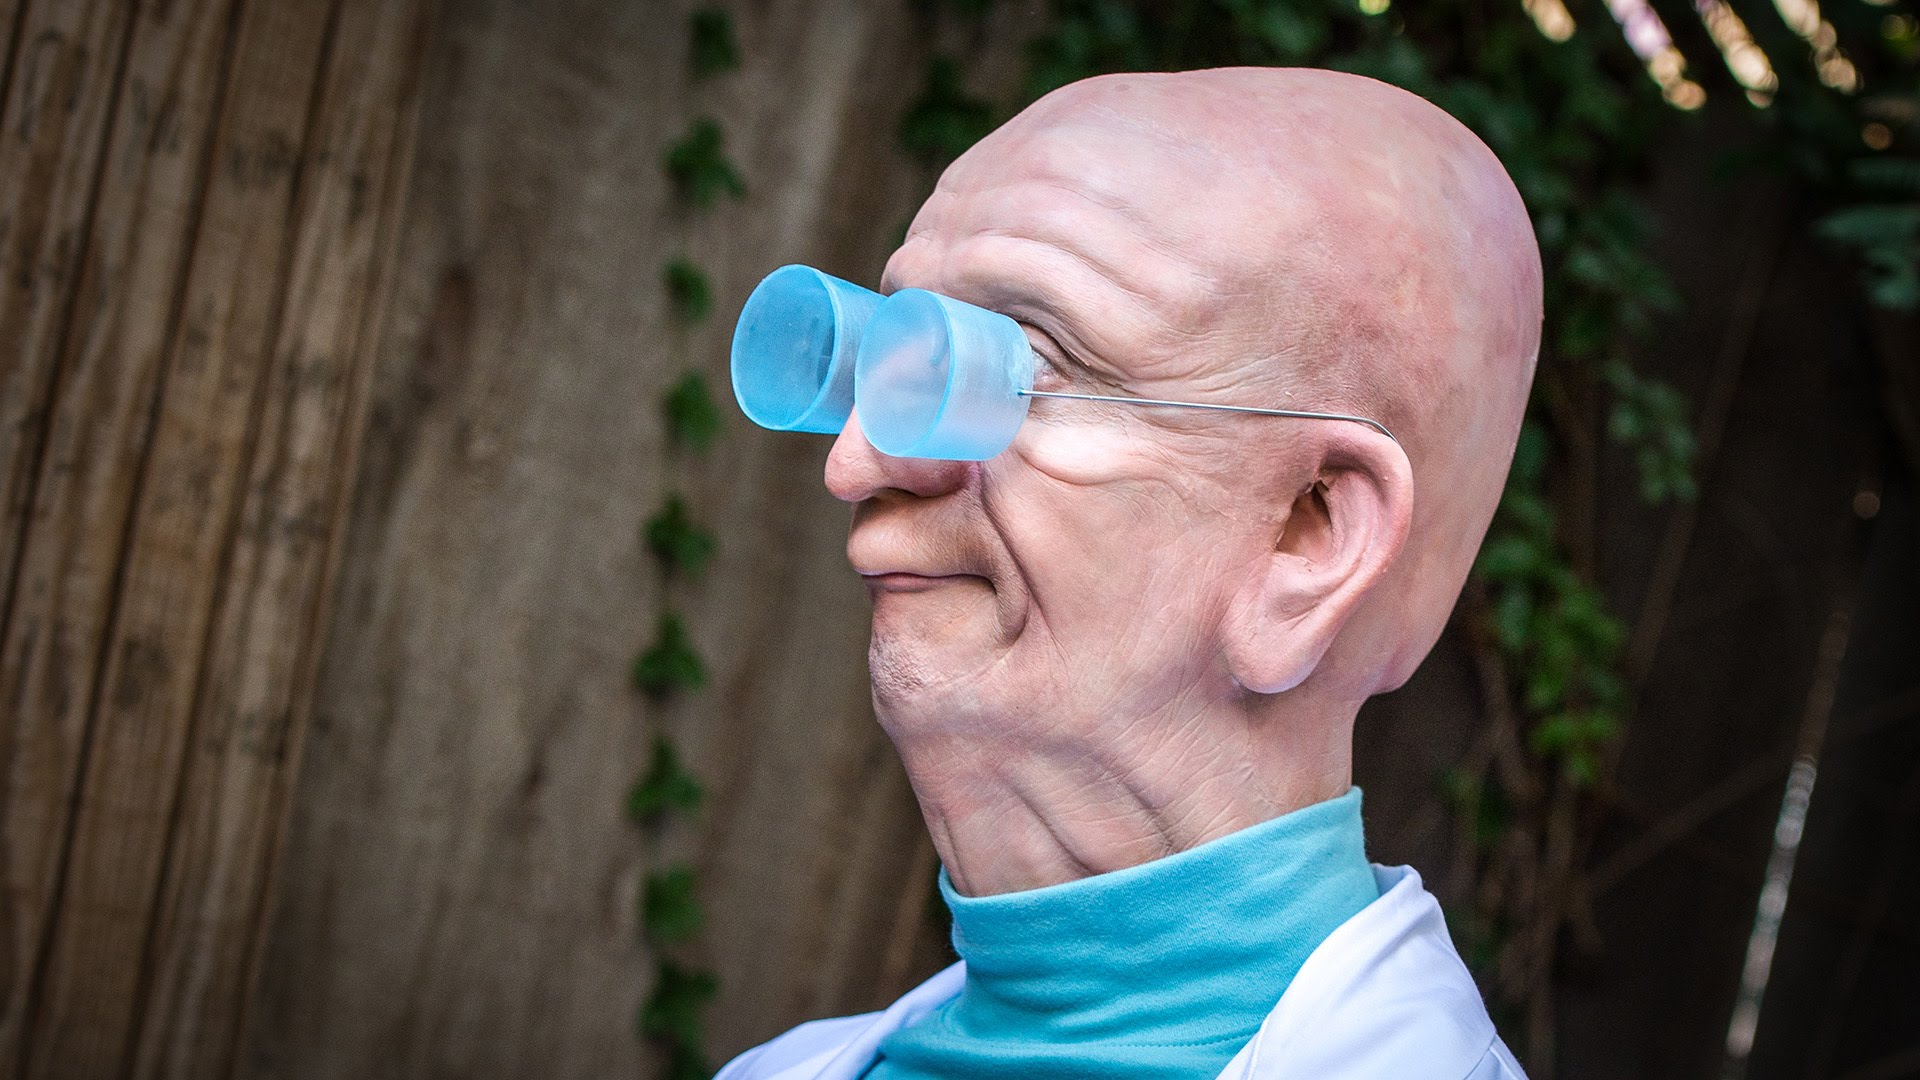 Tested Enlists a Movie Effects Artist to Create a Creepy Real-Life Professor Farnsworth From 'Futurama'